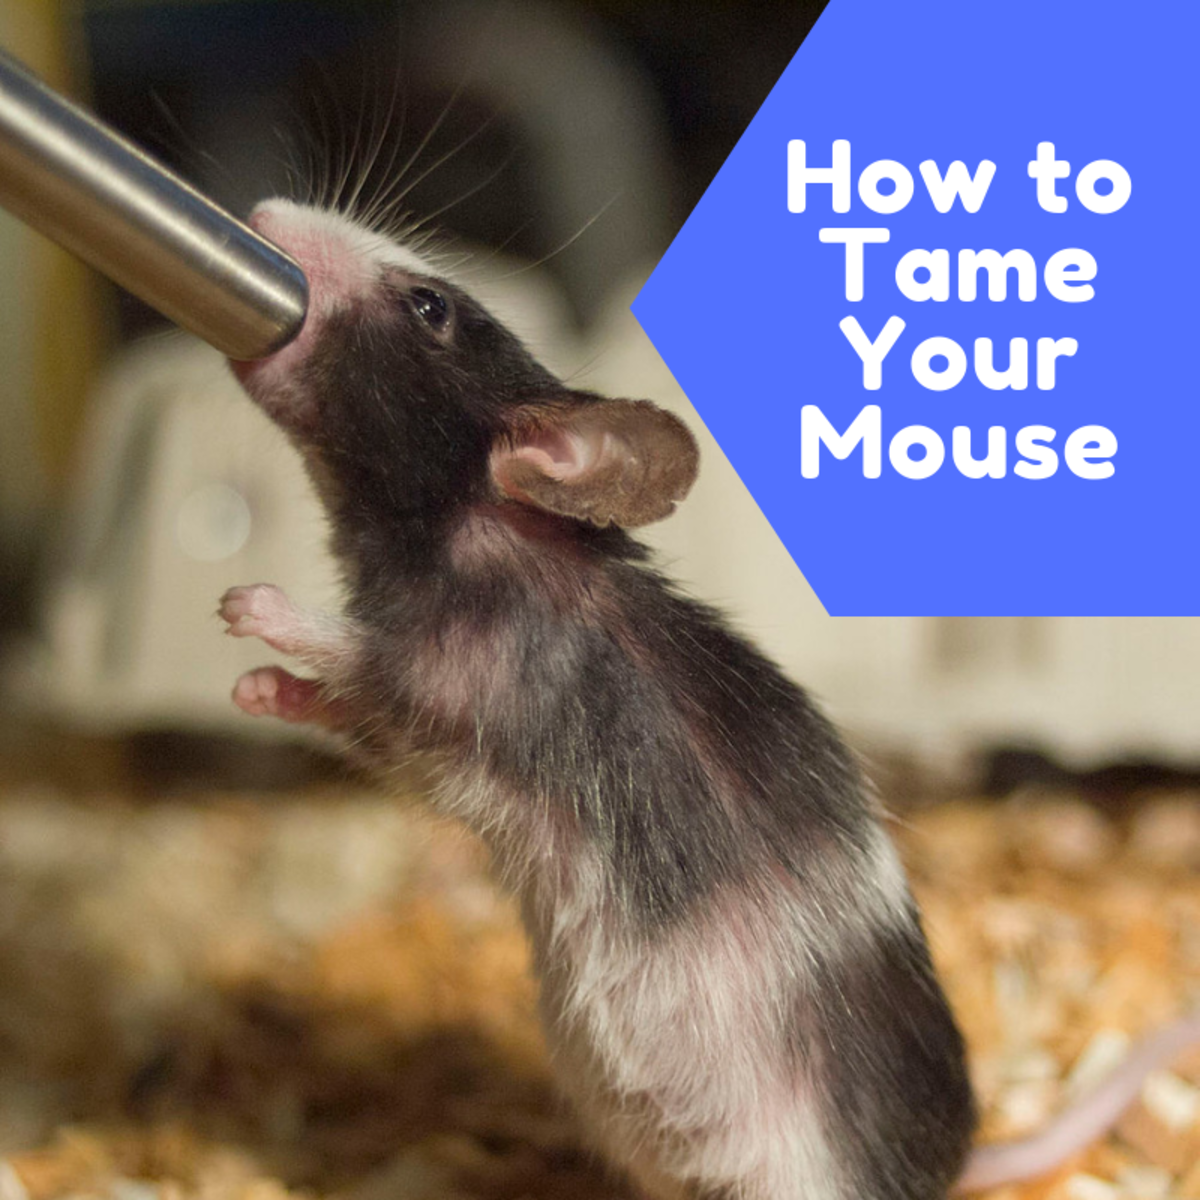 Mice are naturally skittish, but can be conditioned to expect and enjoy human companionship.